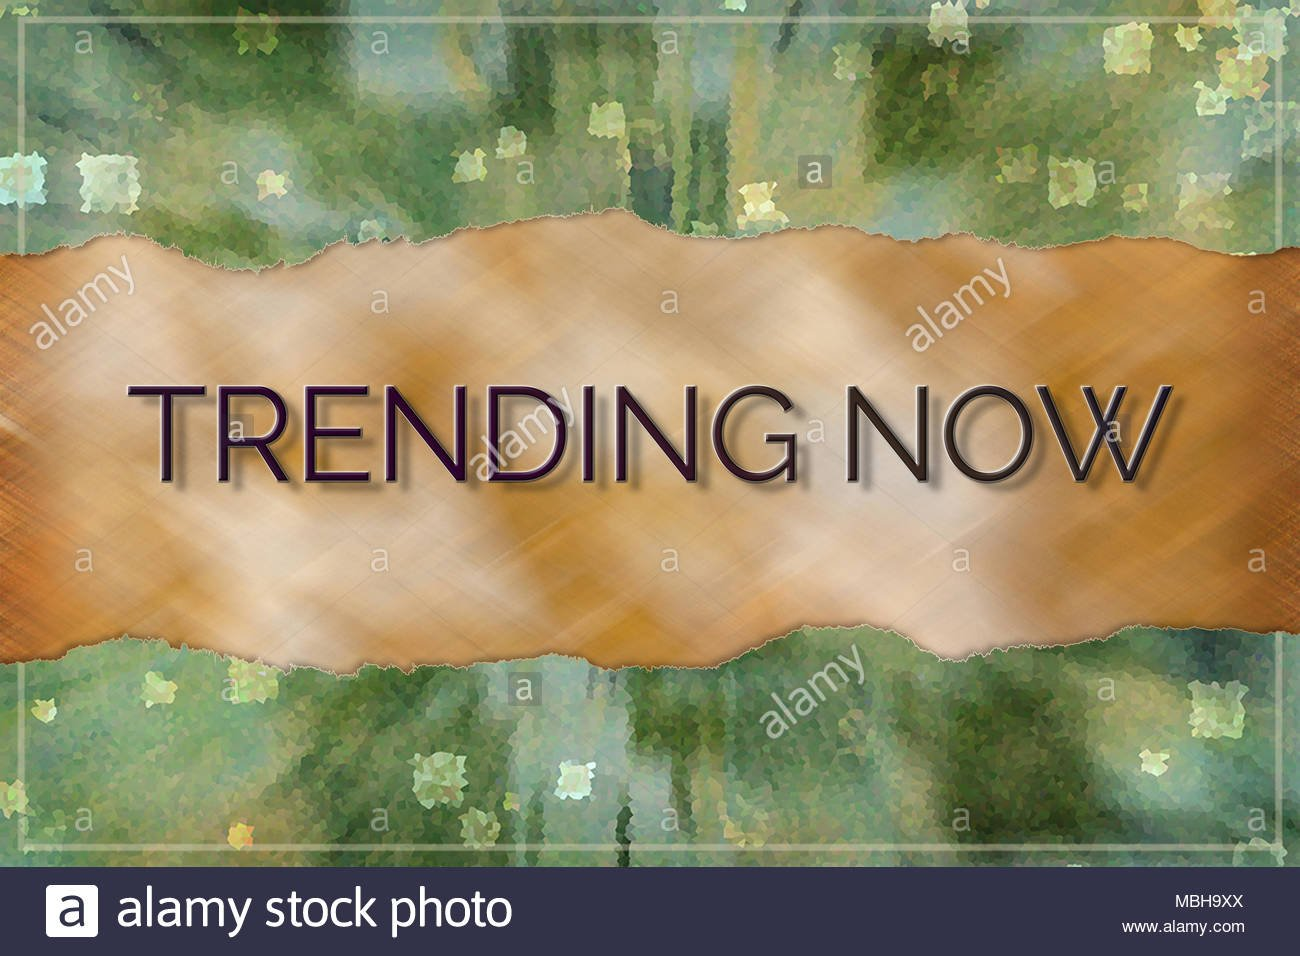 Trending now business conceptual with colorful background for 1300x956